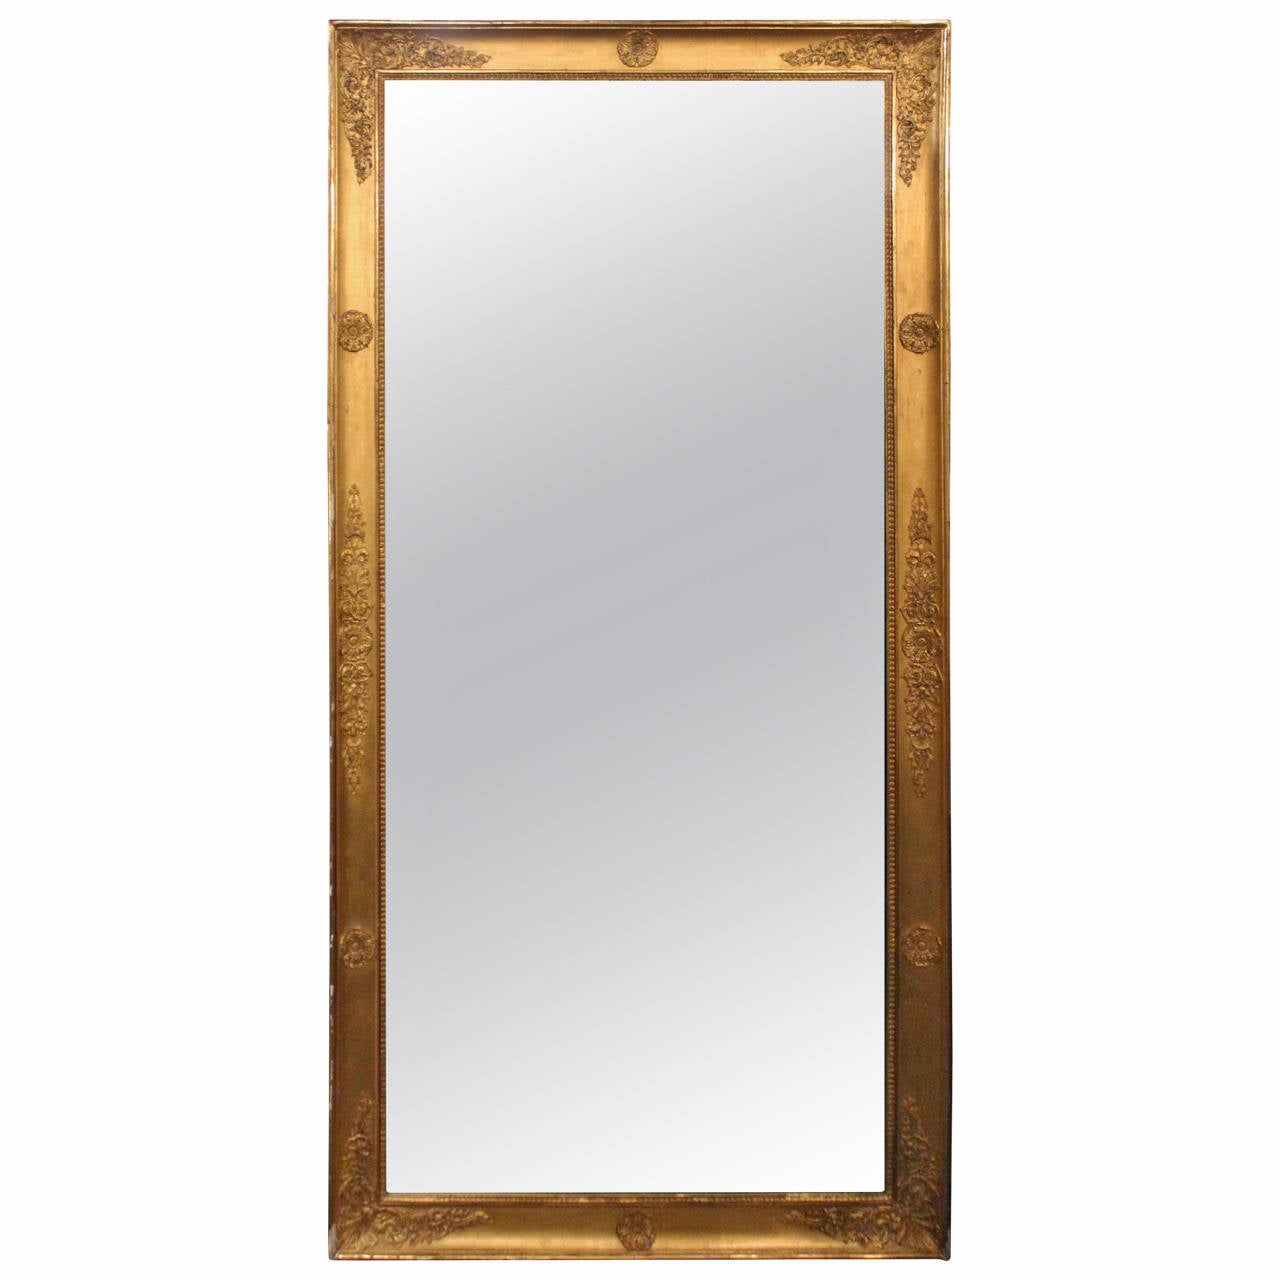 French tall mirror in gilt frame for sale at 1stdibs for Tall framed mirror